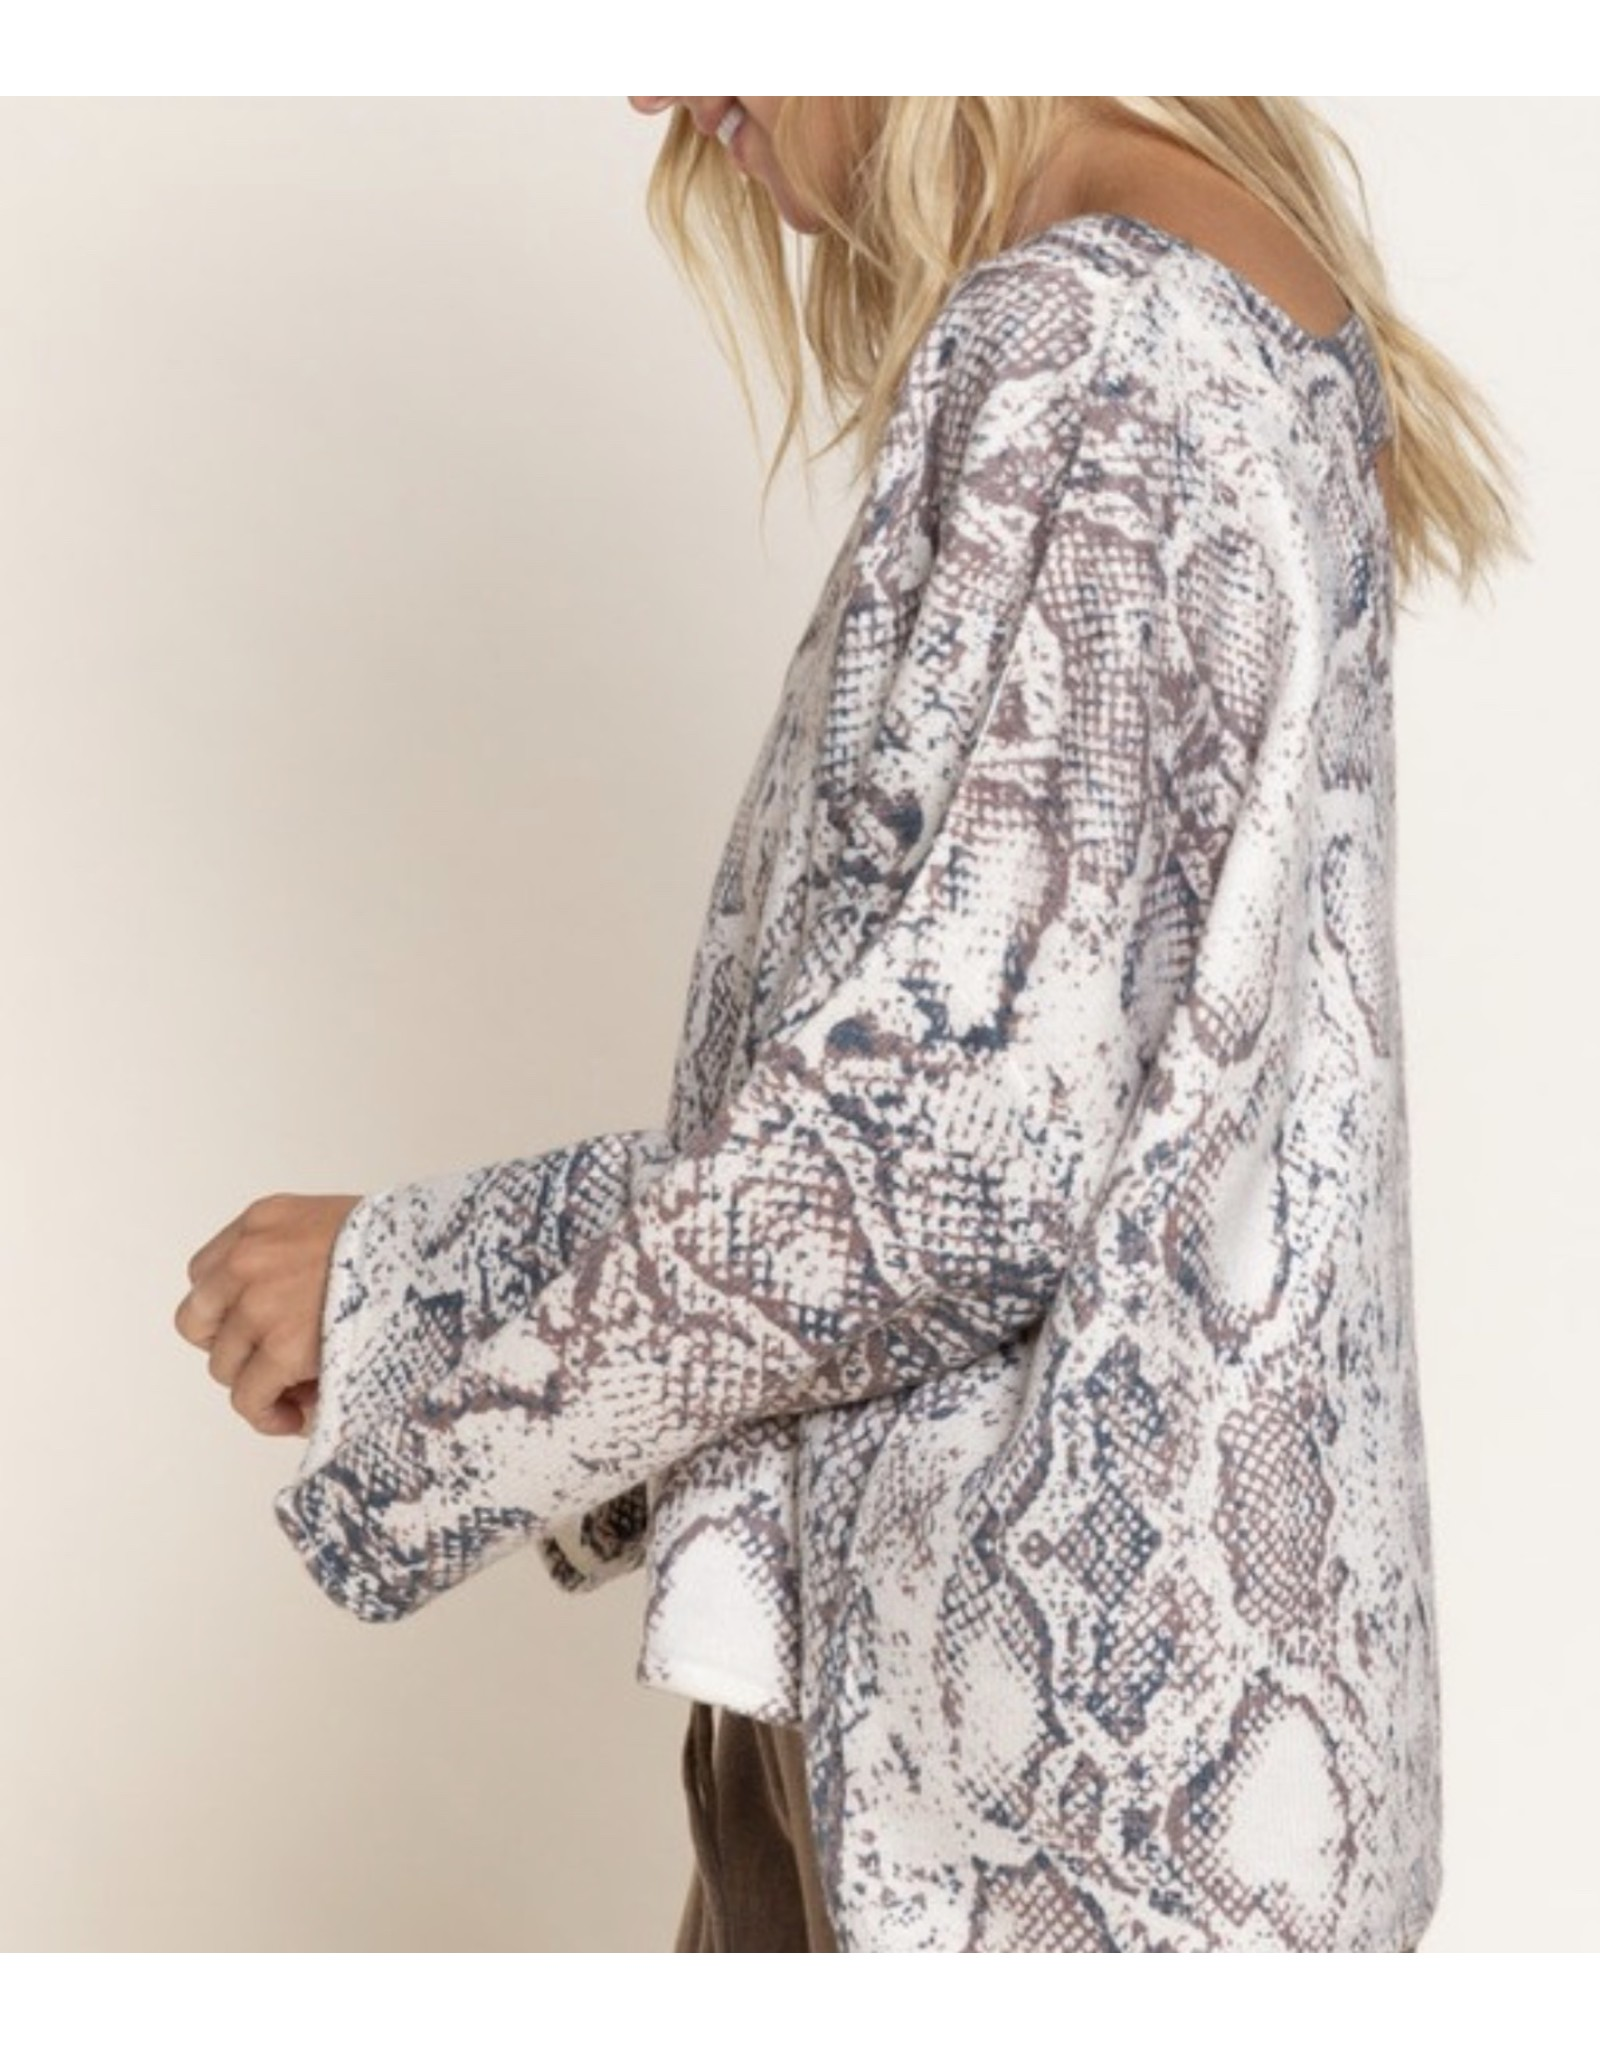 Oversized Snake Print Sweater - Taupe